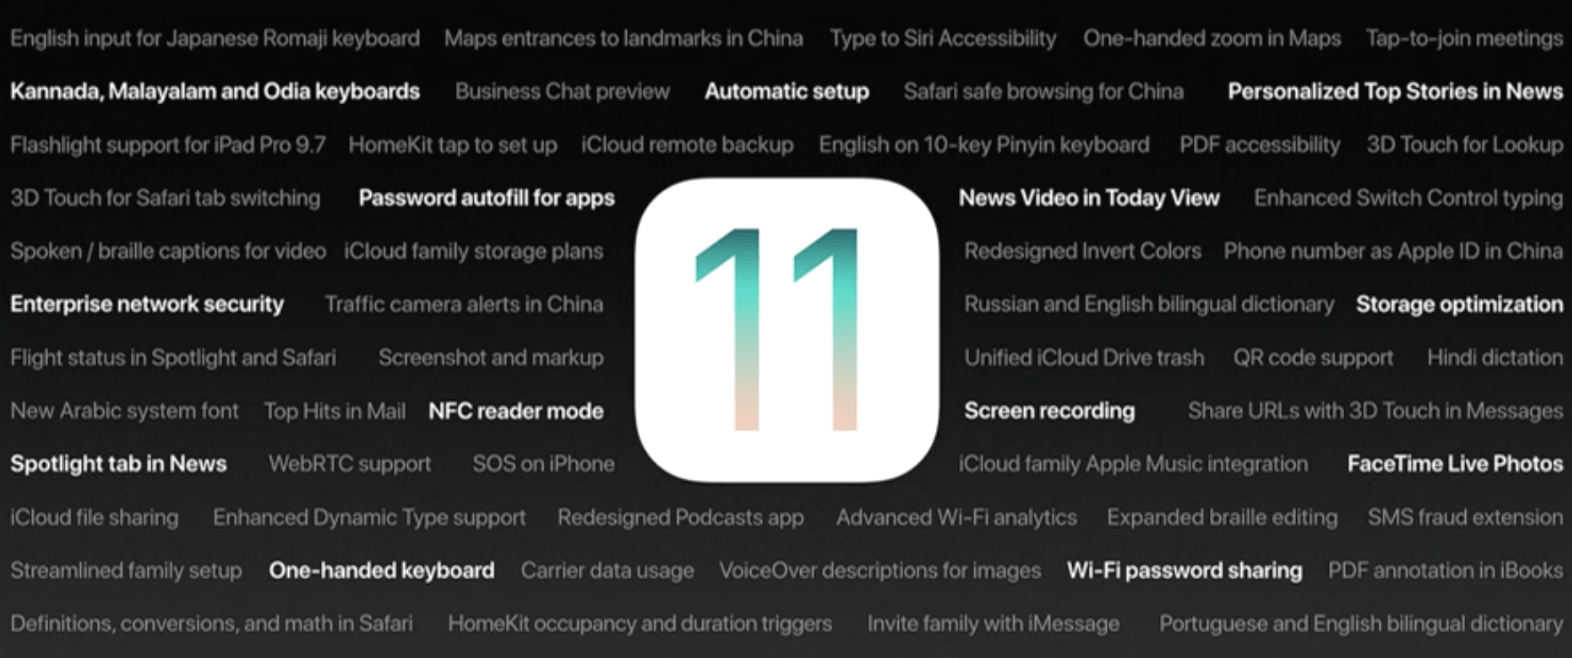 Slide during Apple's Keynote at WWDC showing a big list of upcoming iOS 11 features that were not discussed during the keynote.